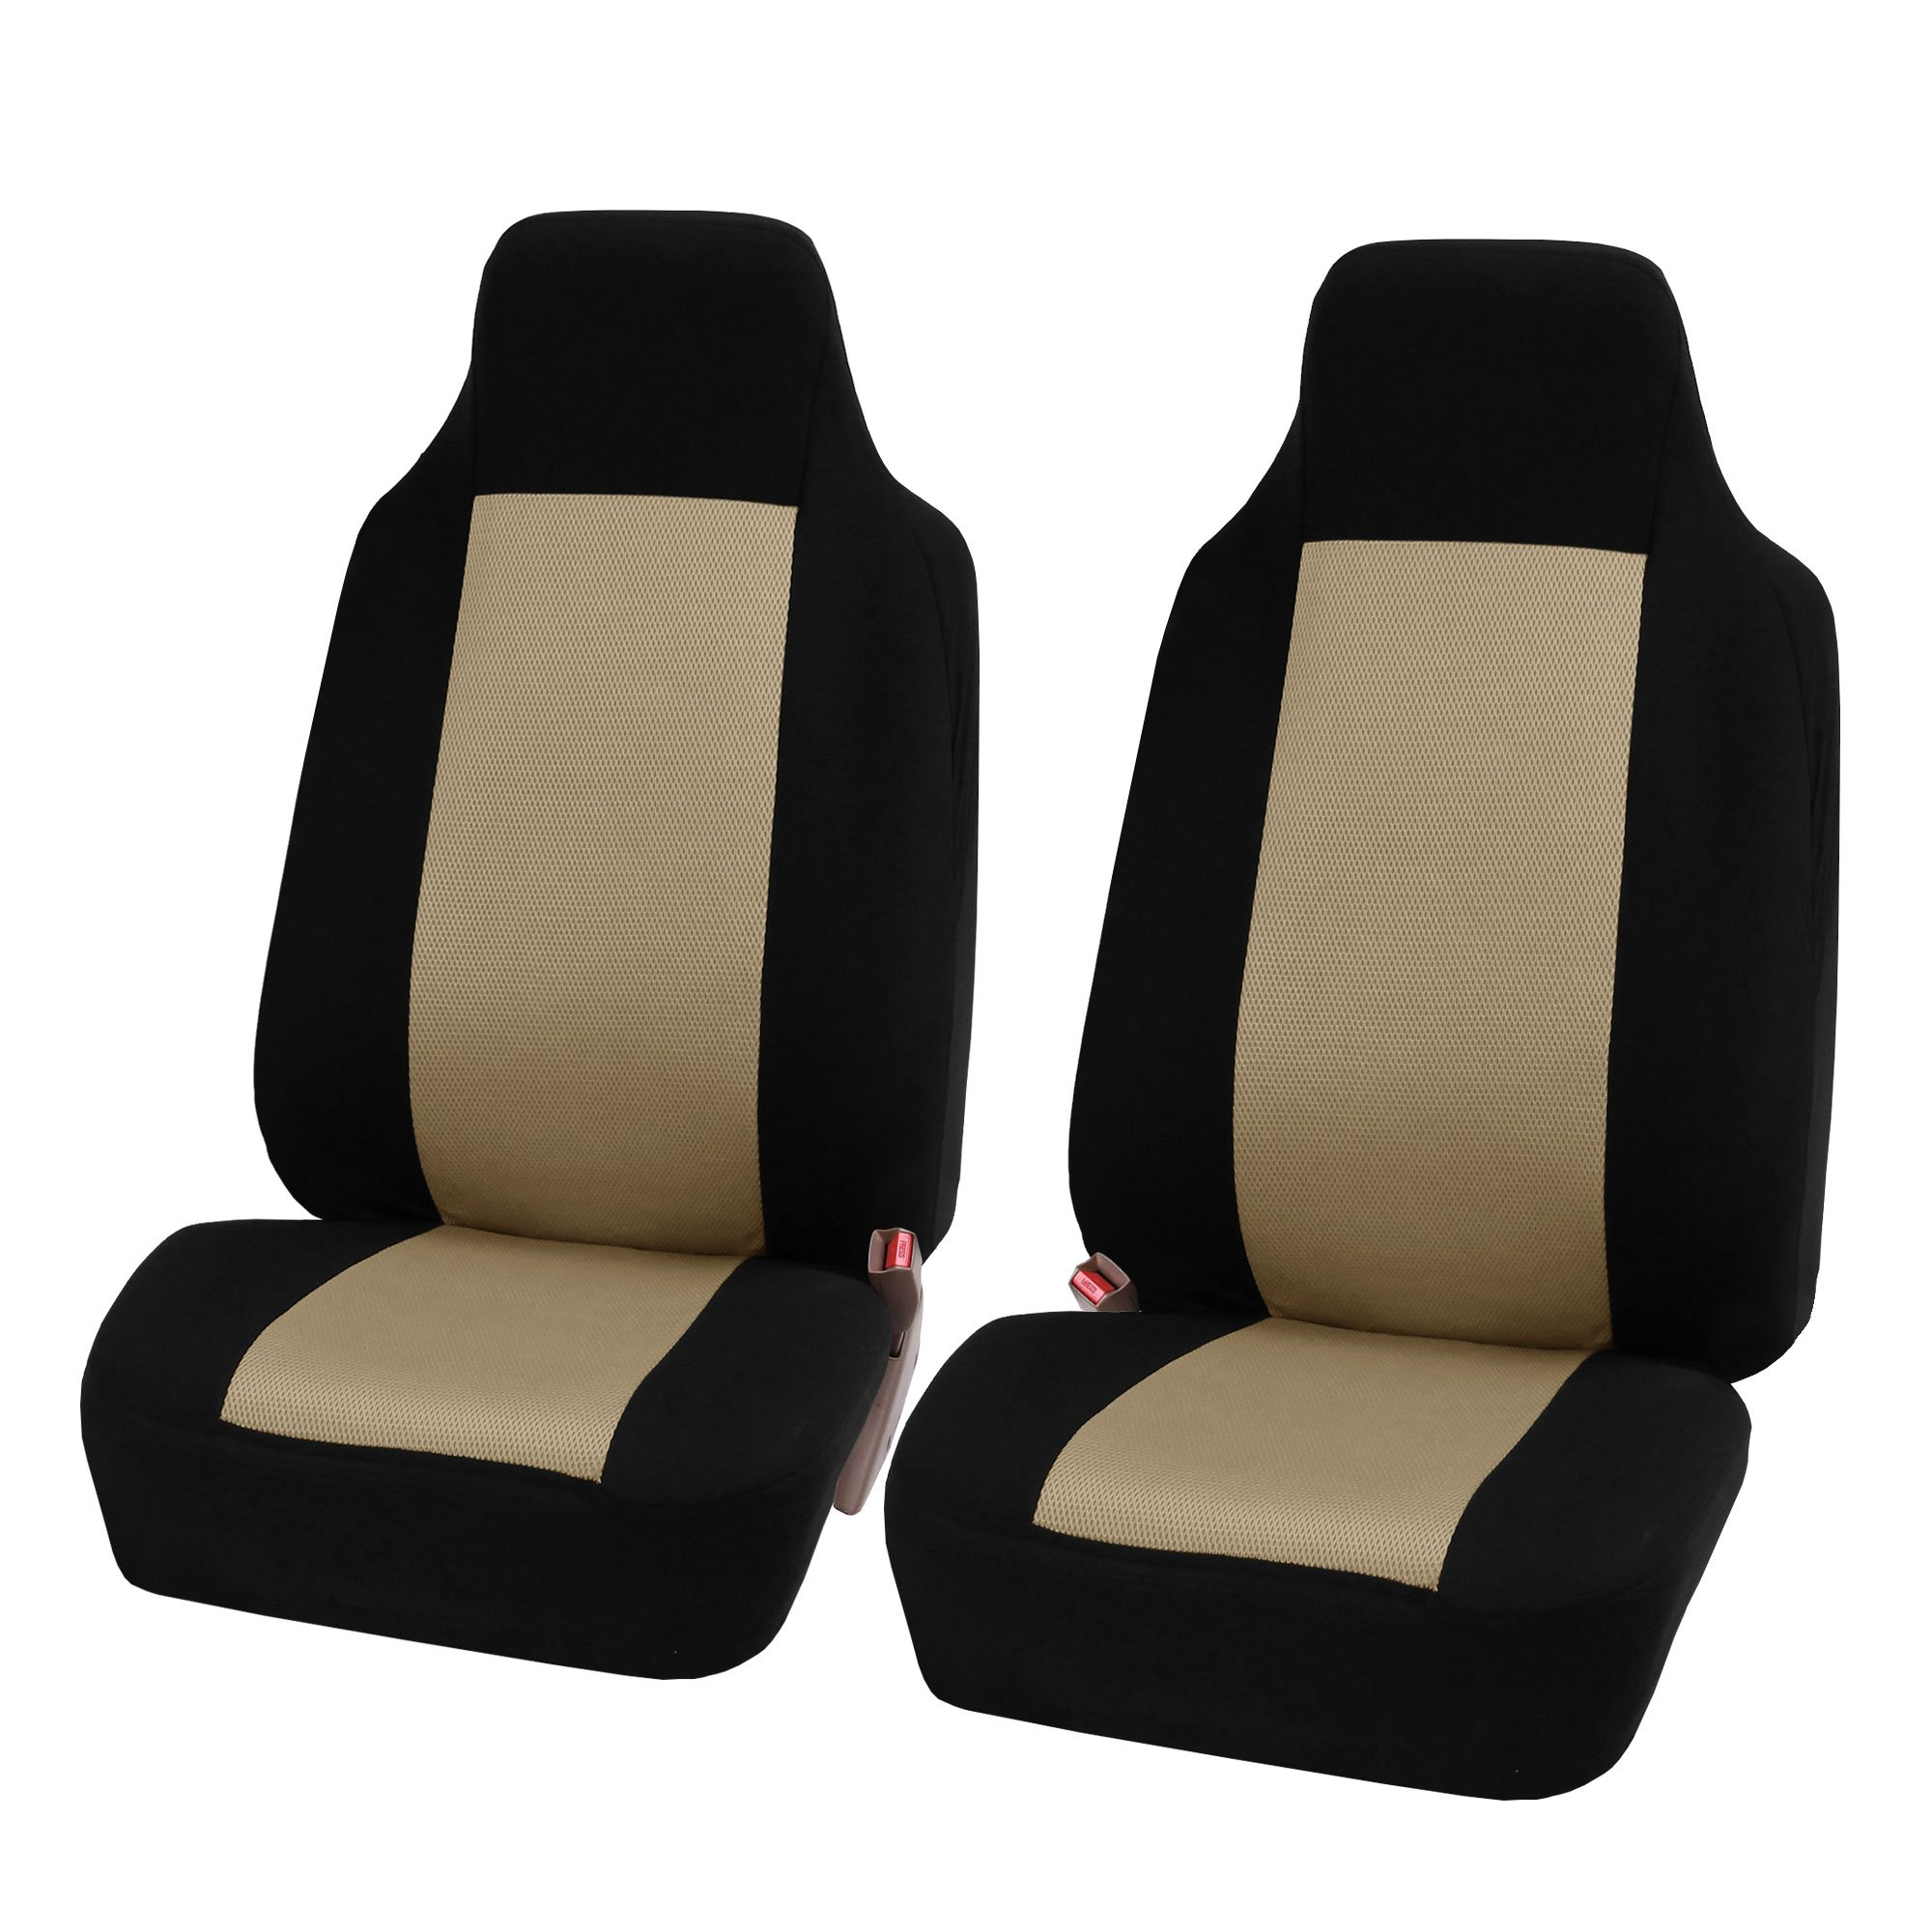 fh group fh fb102114 full set classic cloth car seat covers with fh group fh1133 e z travel car. Black Bedroom Furniture Sets. Home Design Ideas